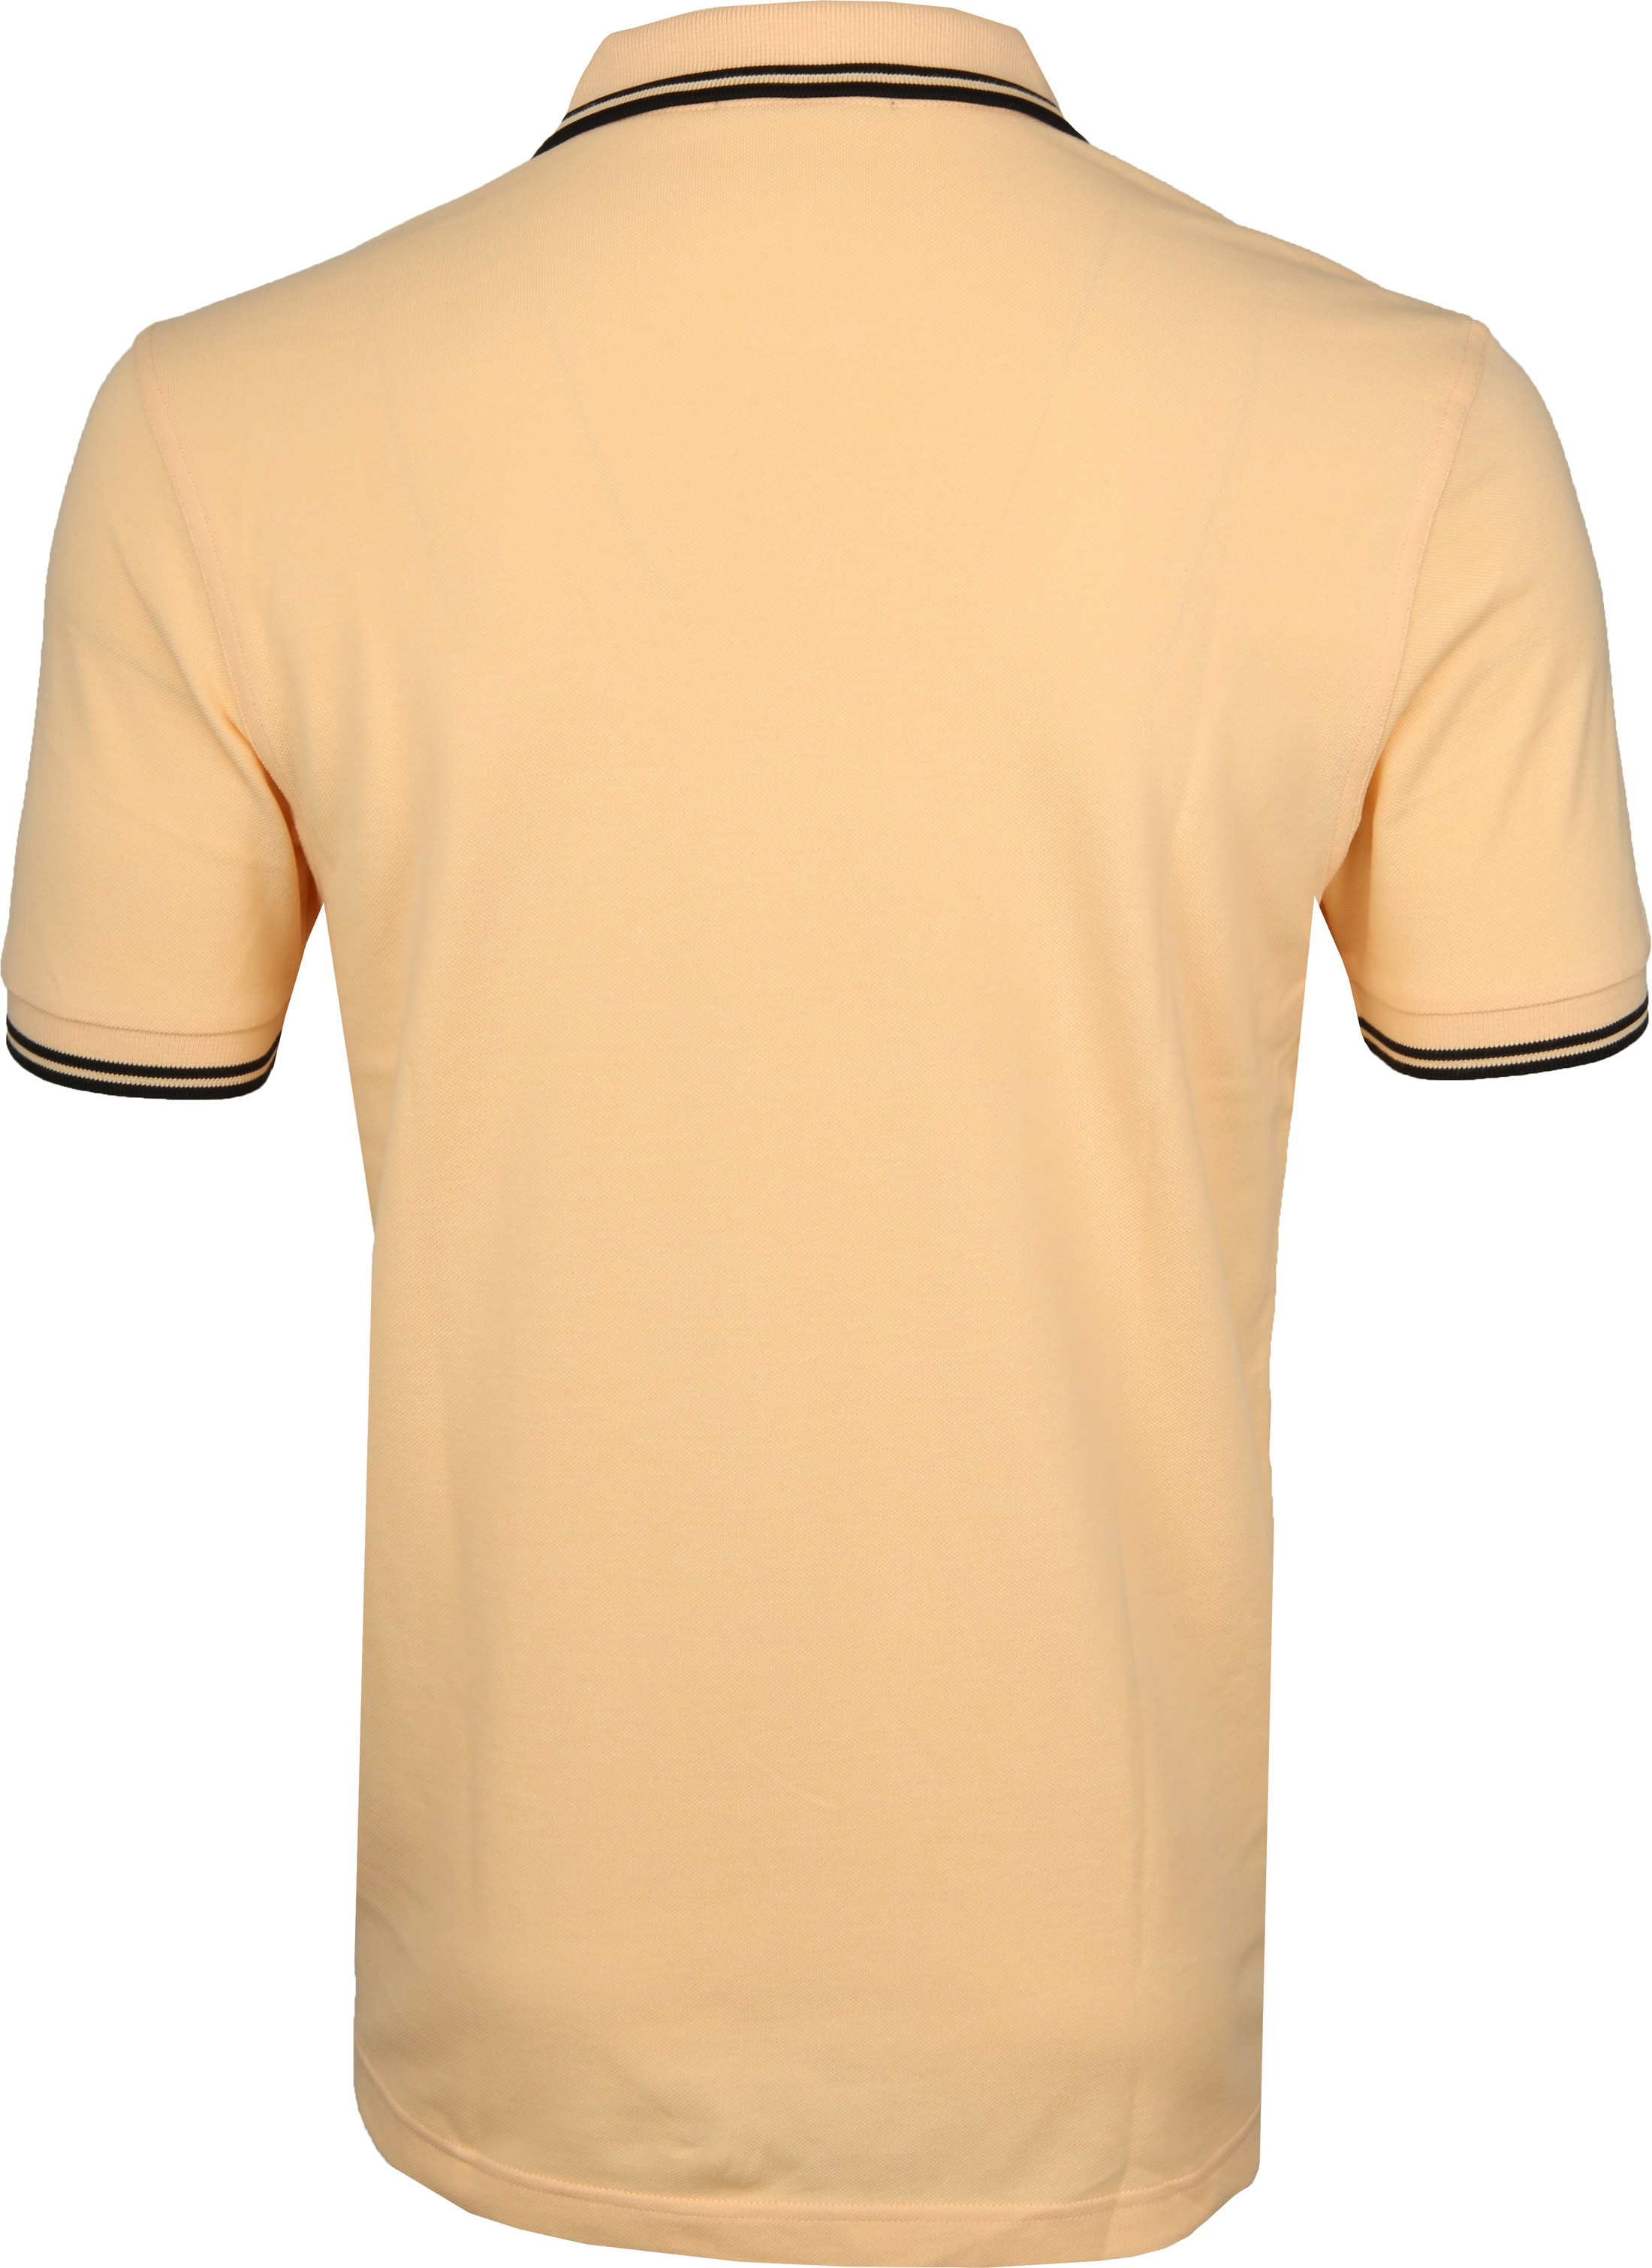 Fred Perry Poloshirt Gelb I07 foto 2